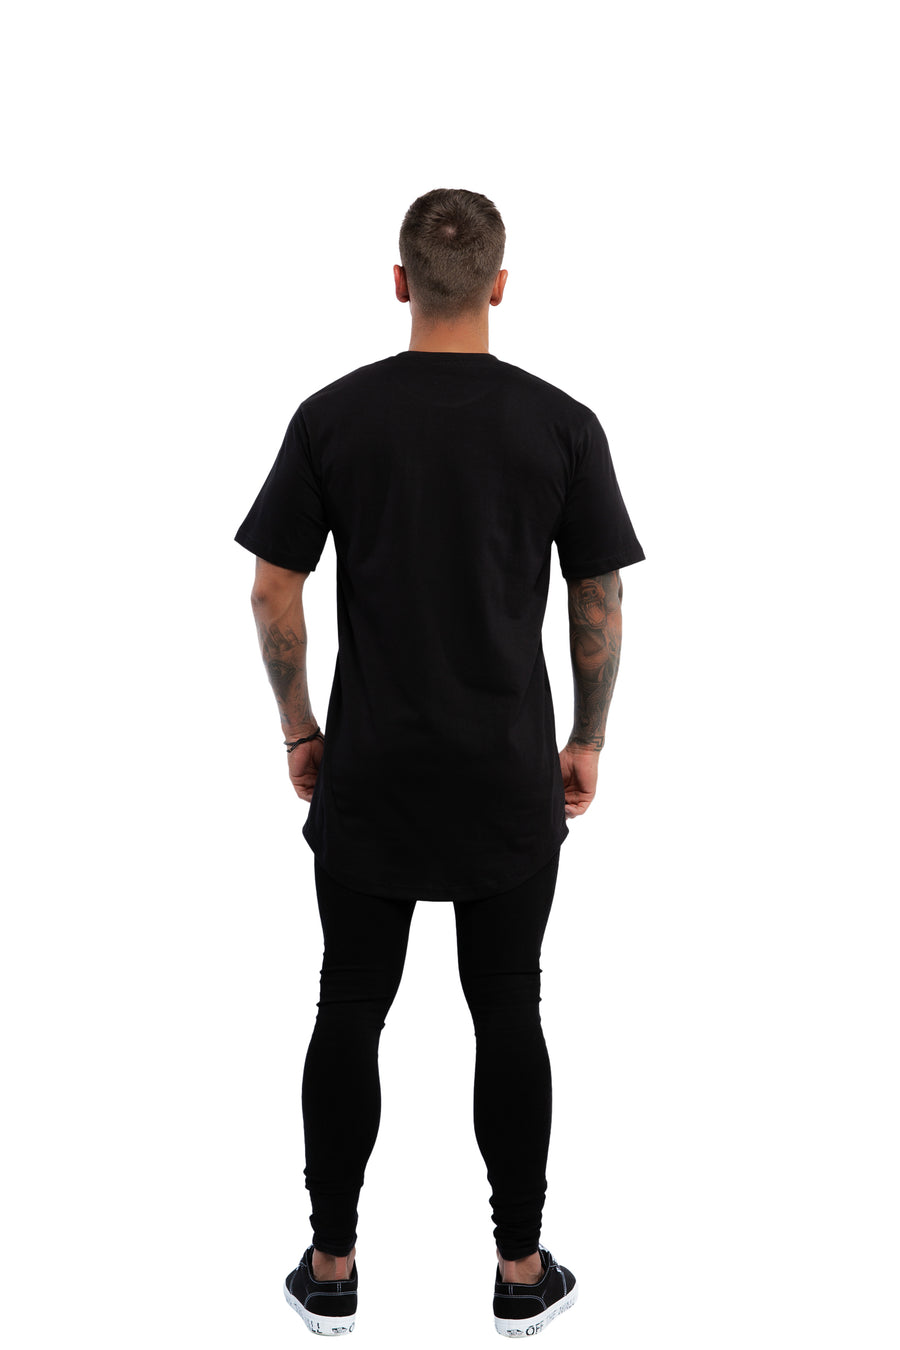 TALL SCOOP BASIC T-SHIRT - BLACK